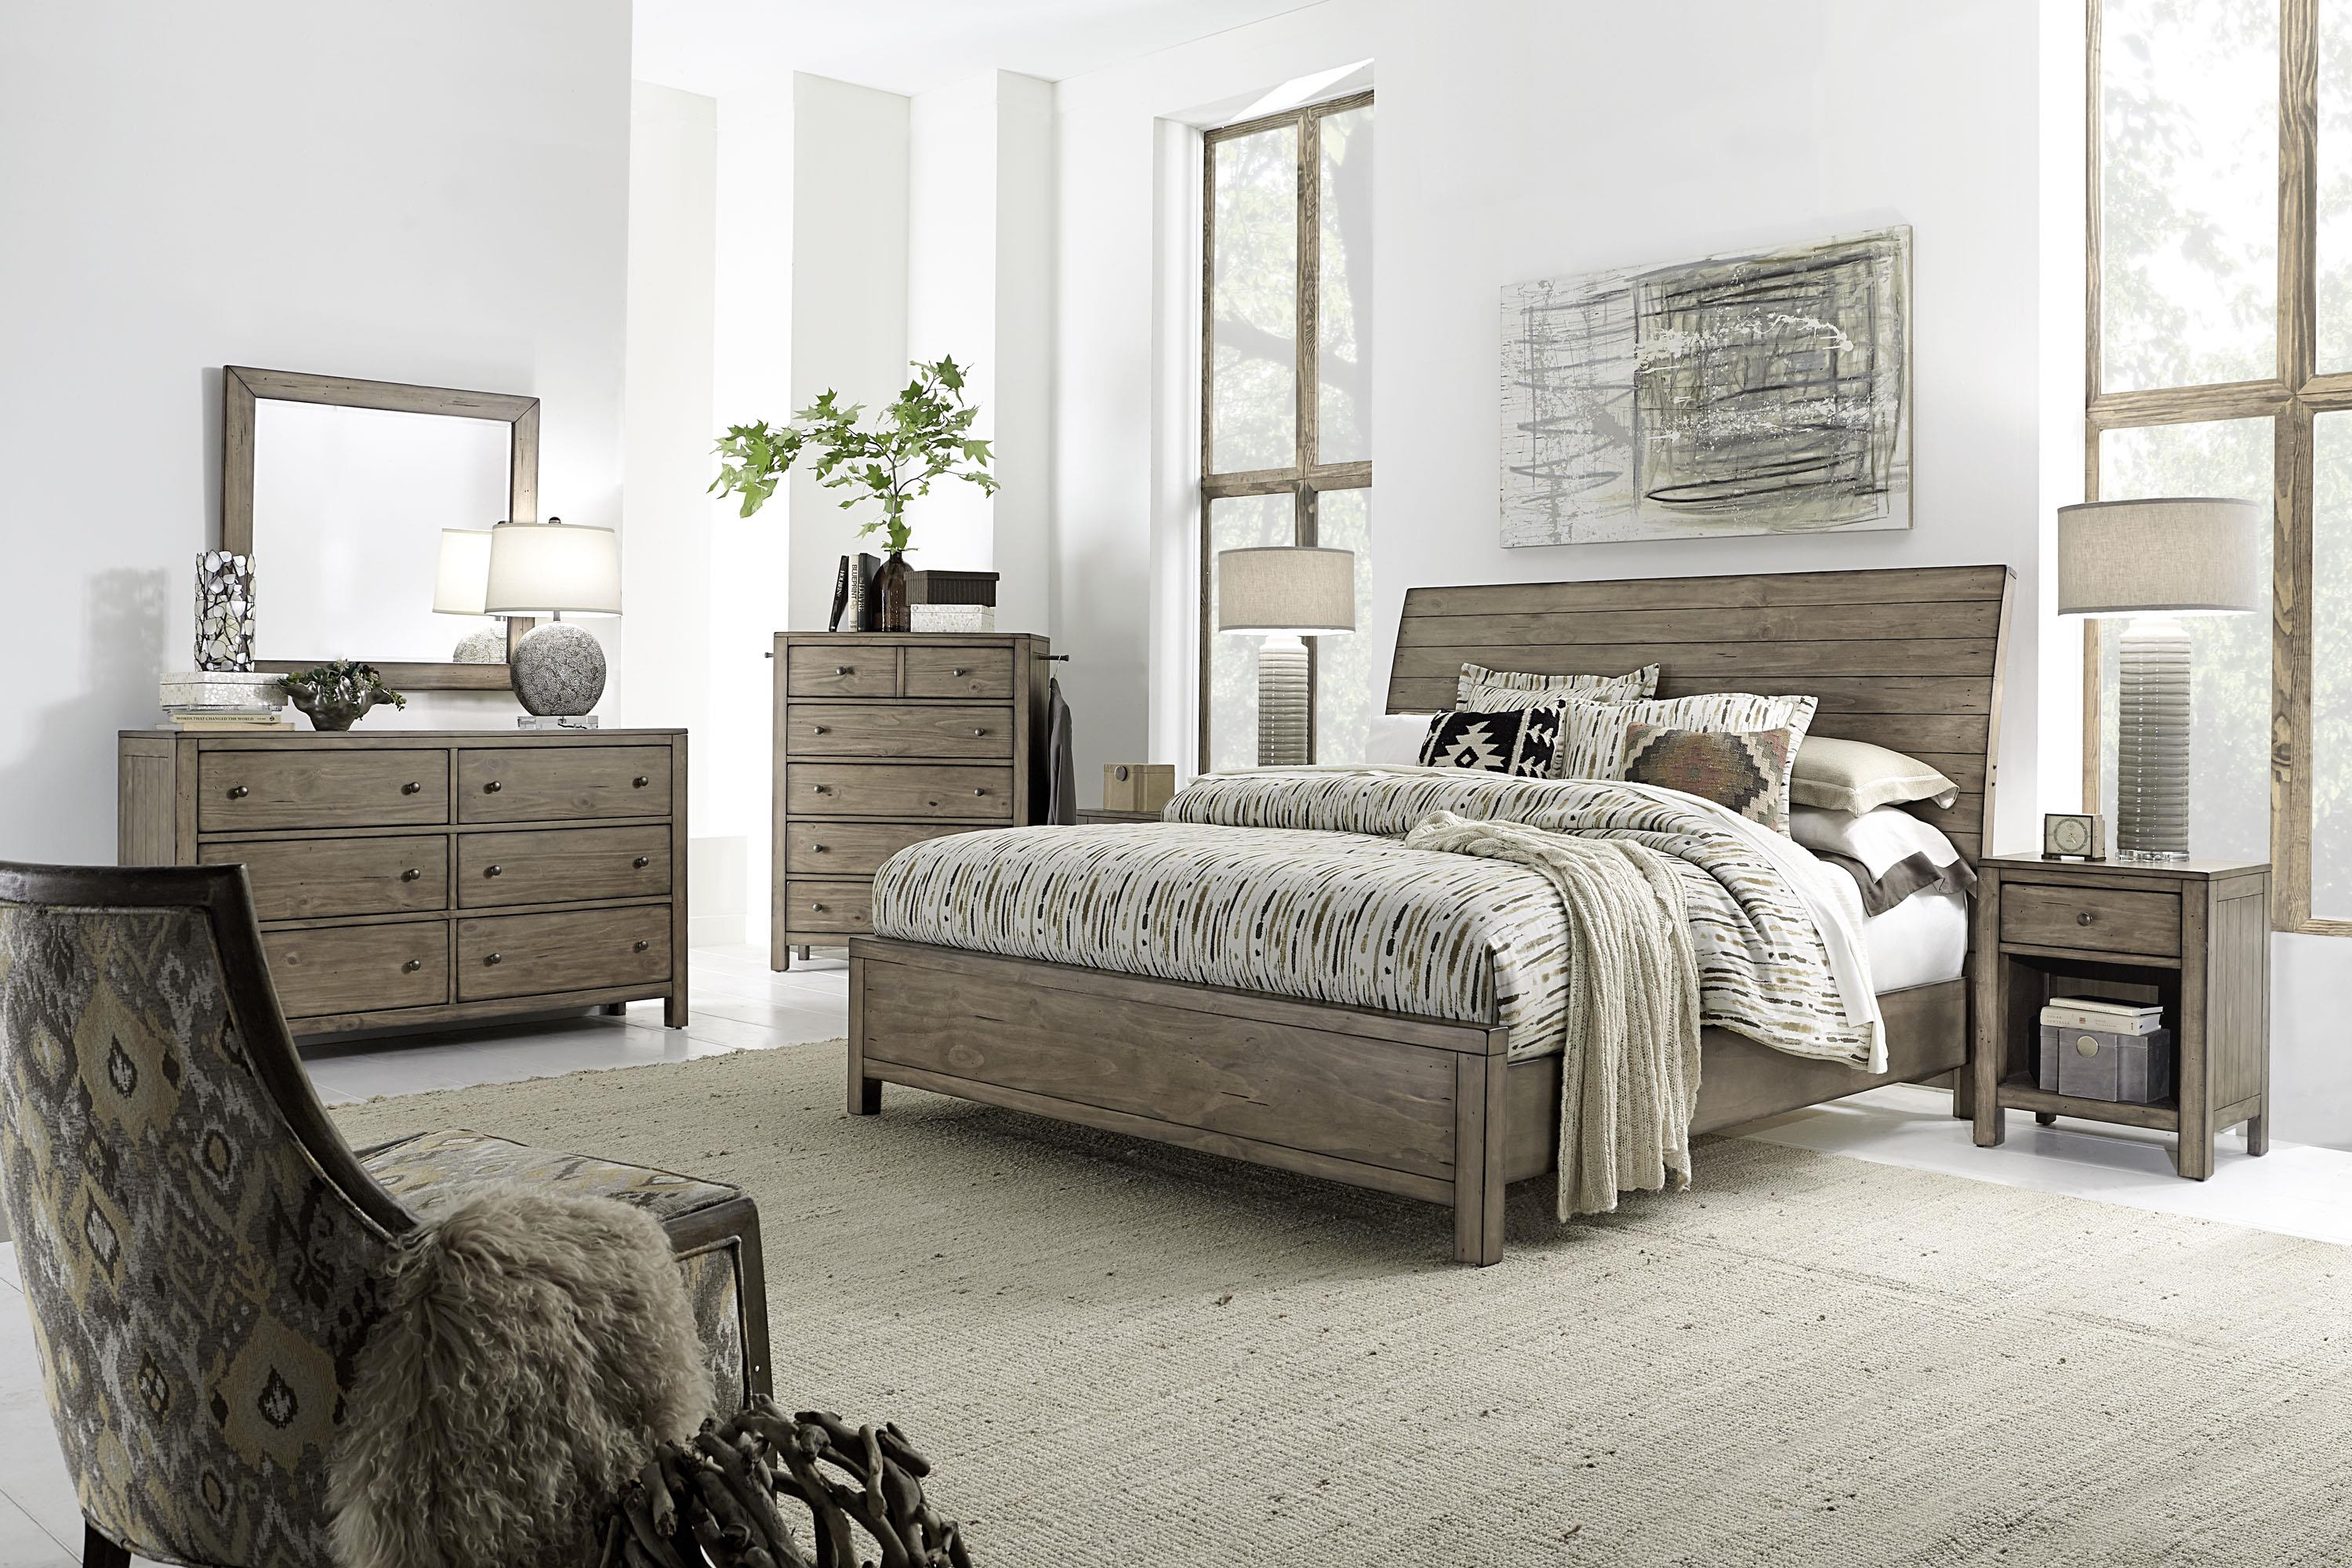 Aspenhome Tildon Queen Bedroom Group - Item Number: I56 Q Bedroom Group 3